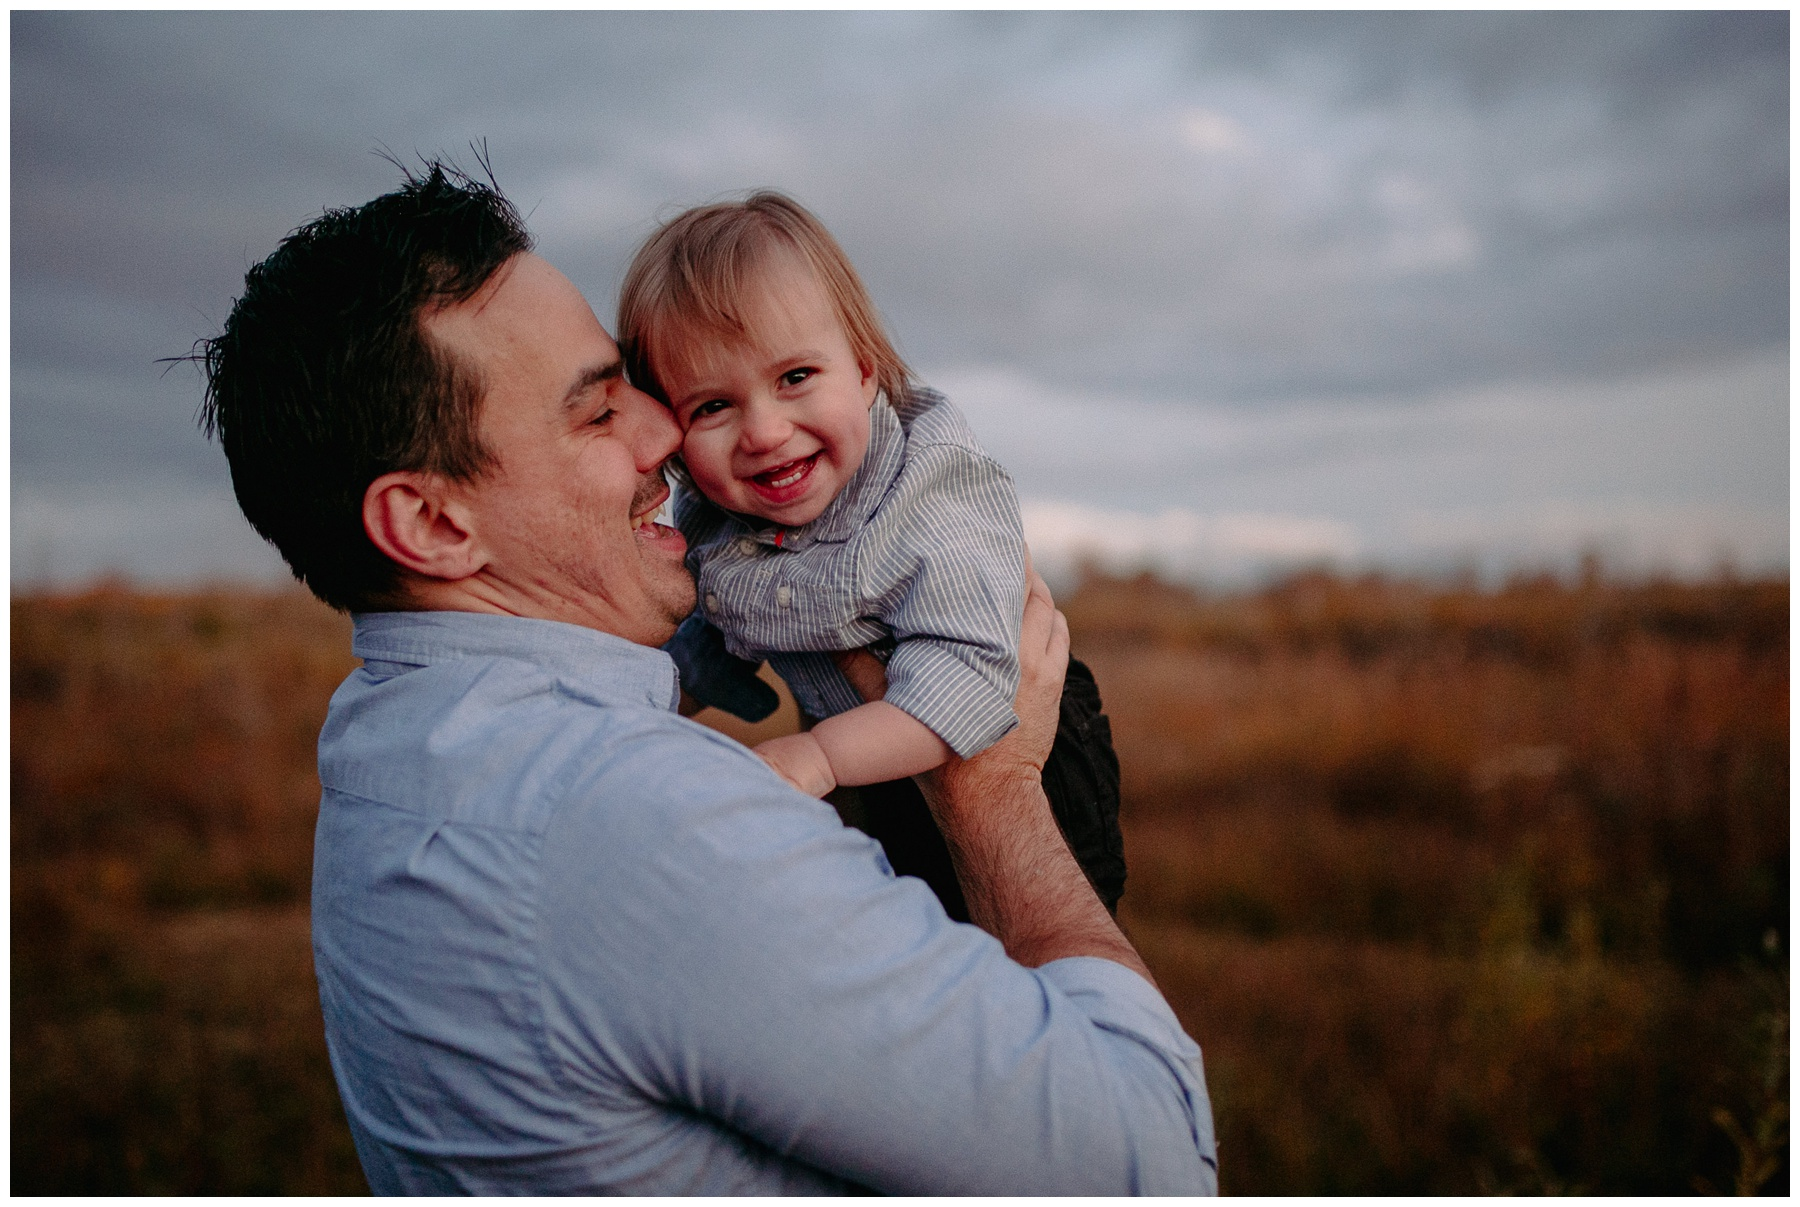 kerry ford photography - fall autumn family session perth065.jpg